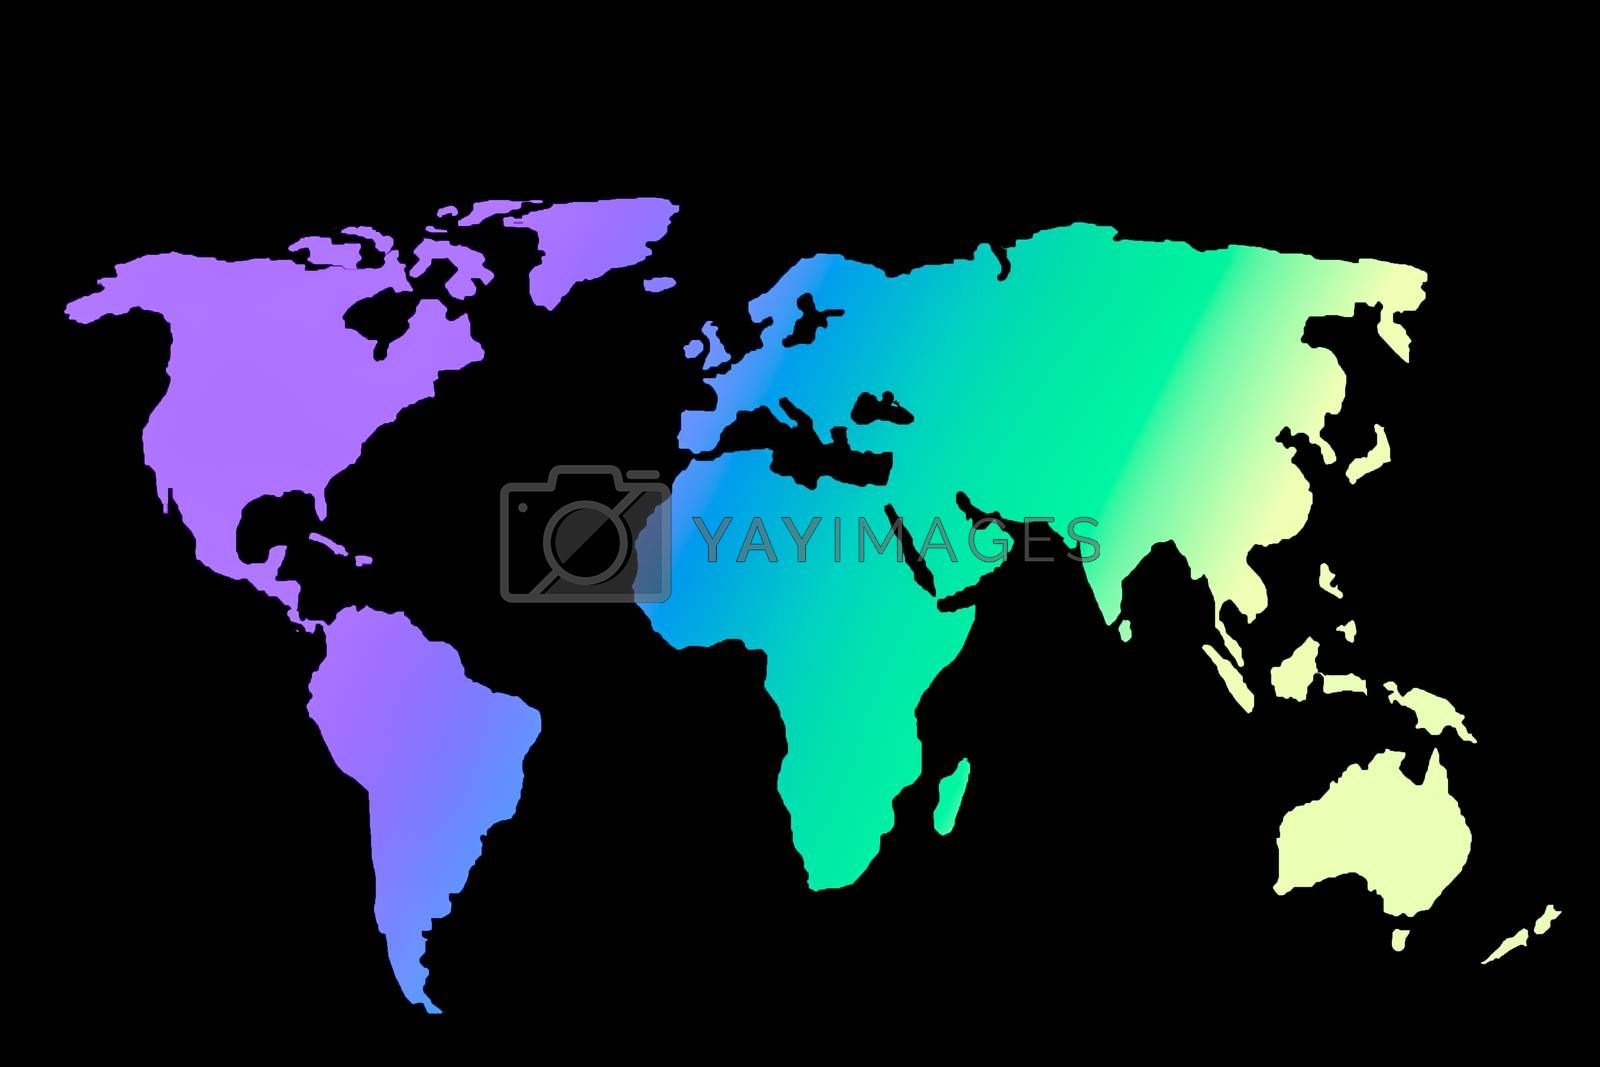 Roughly sketched out world map with colorful filling by berkay